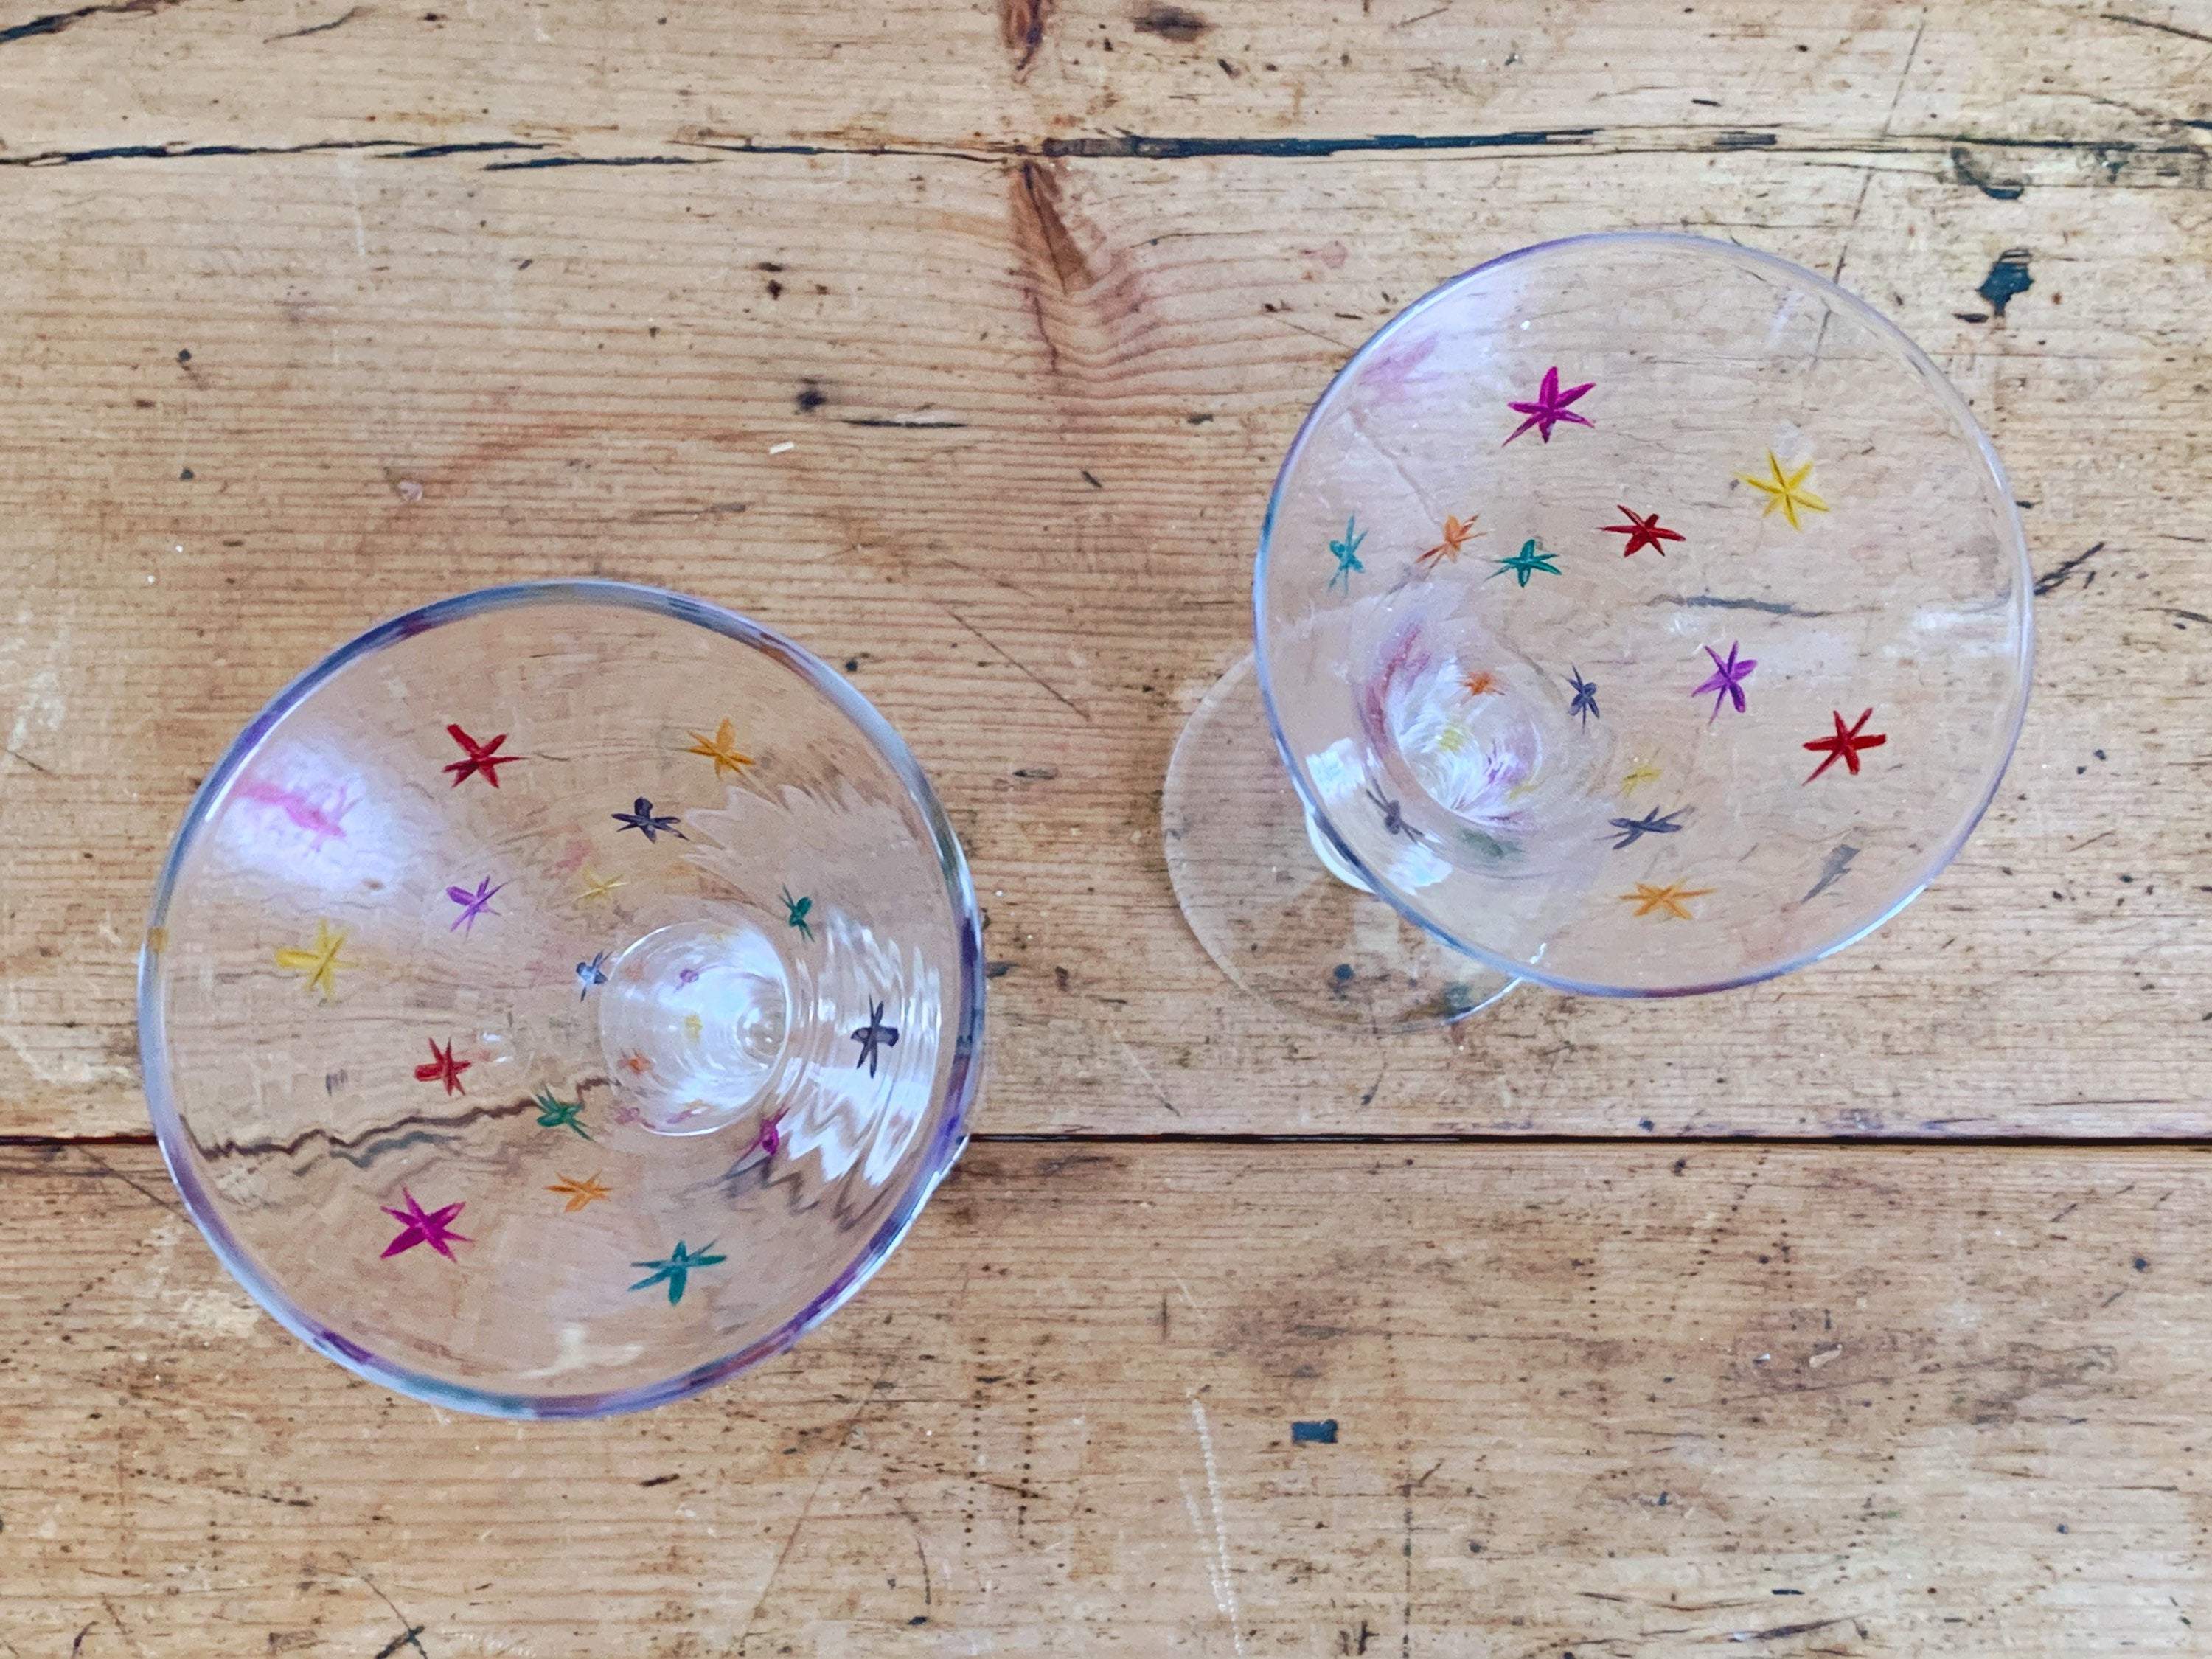 Pair of Vintage Multi-Colored Starburst Champagne Flutes | Barware Glasses Gift For Her New Years Eve Party